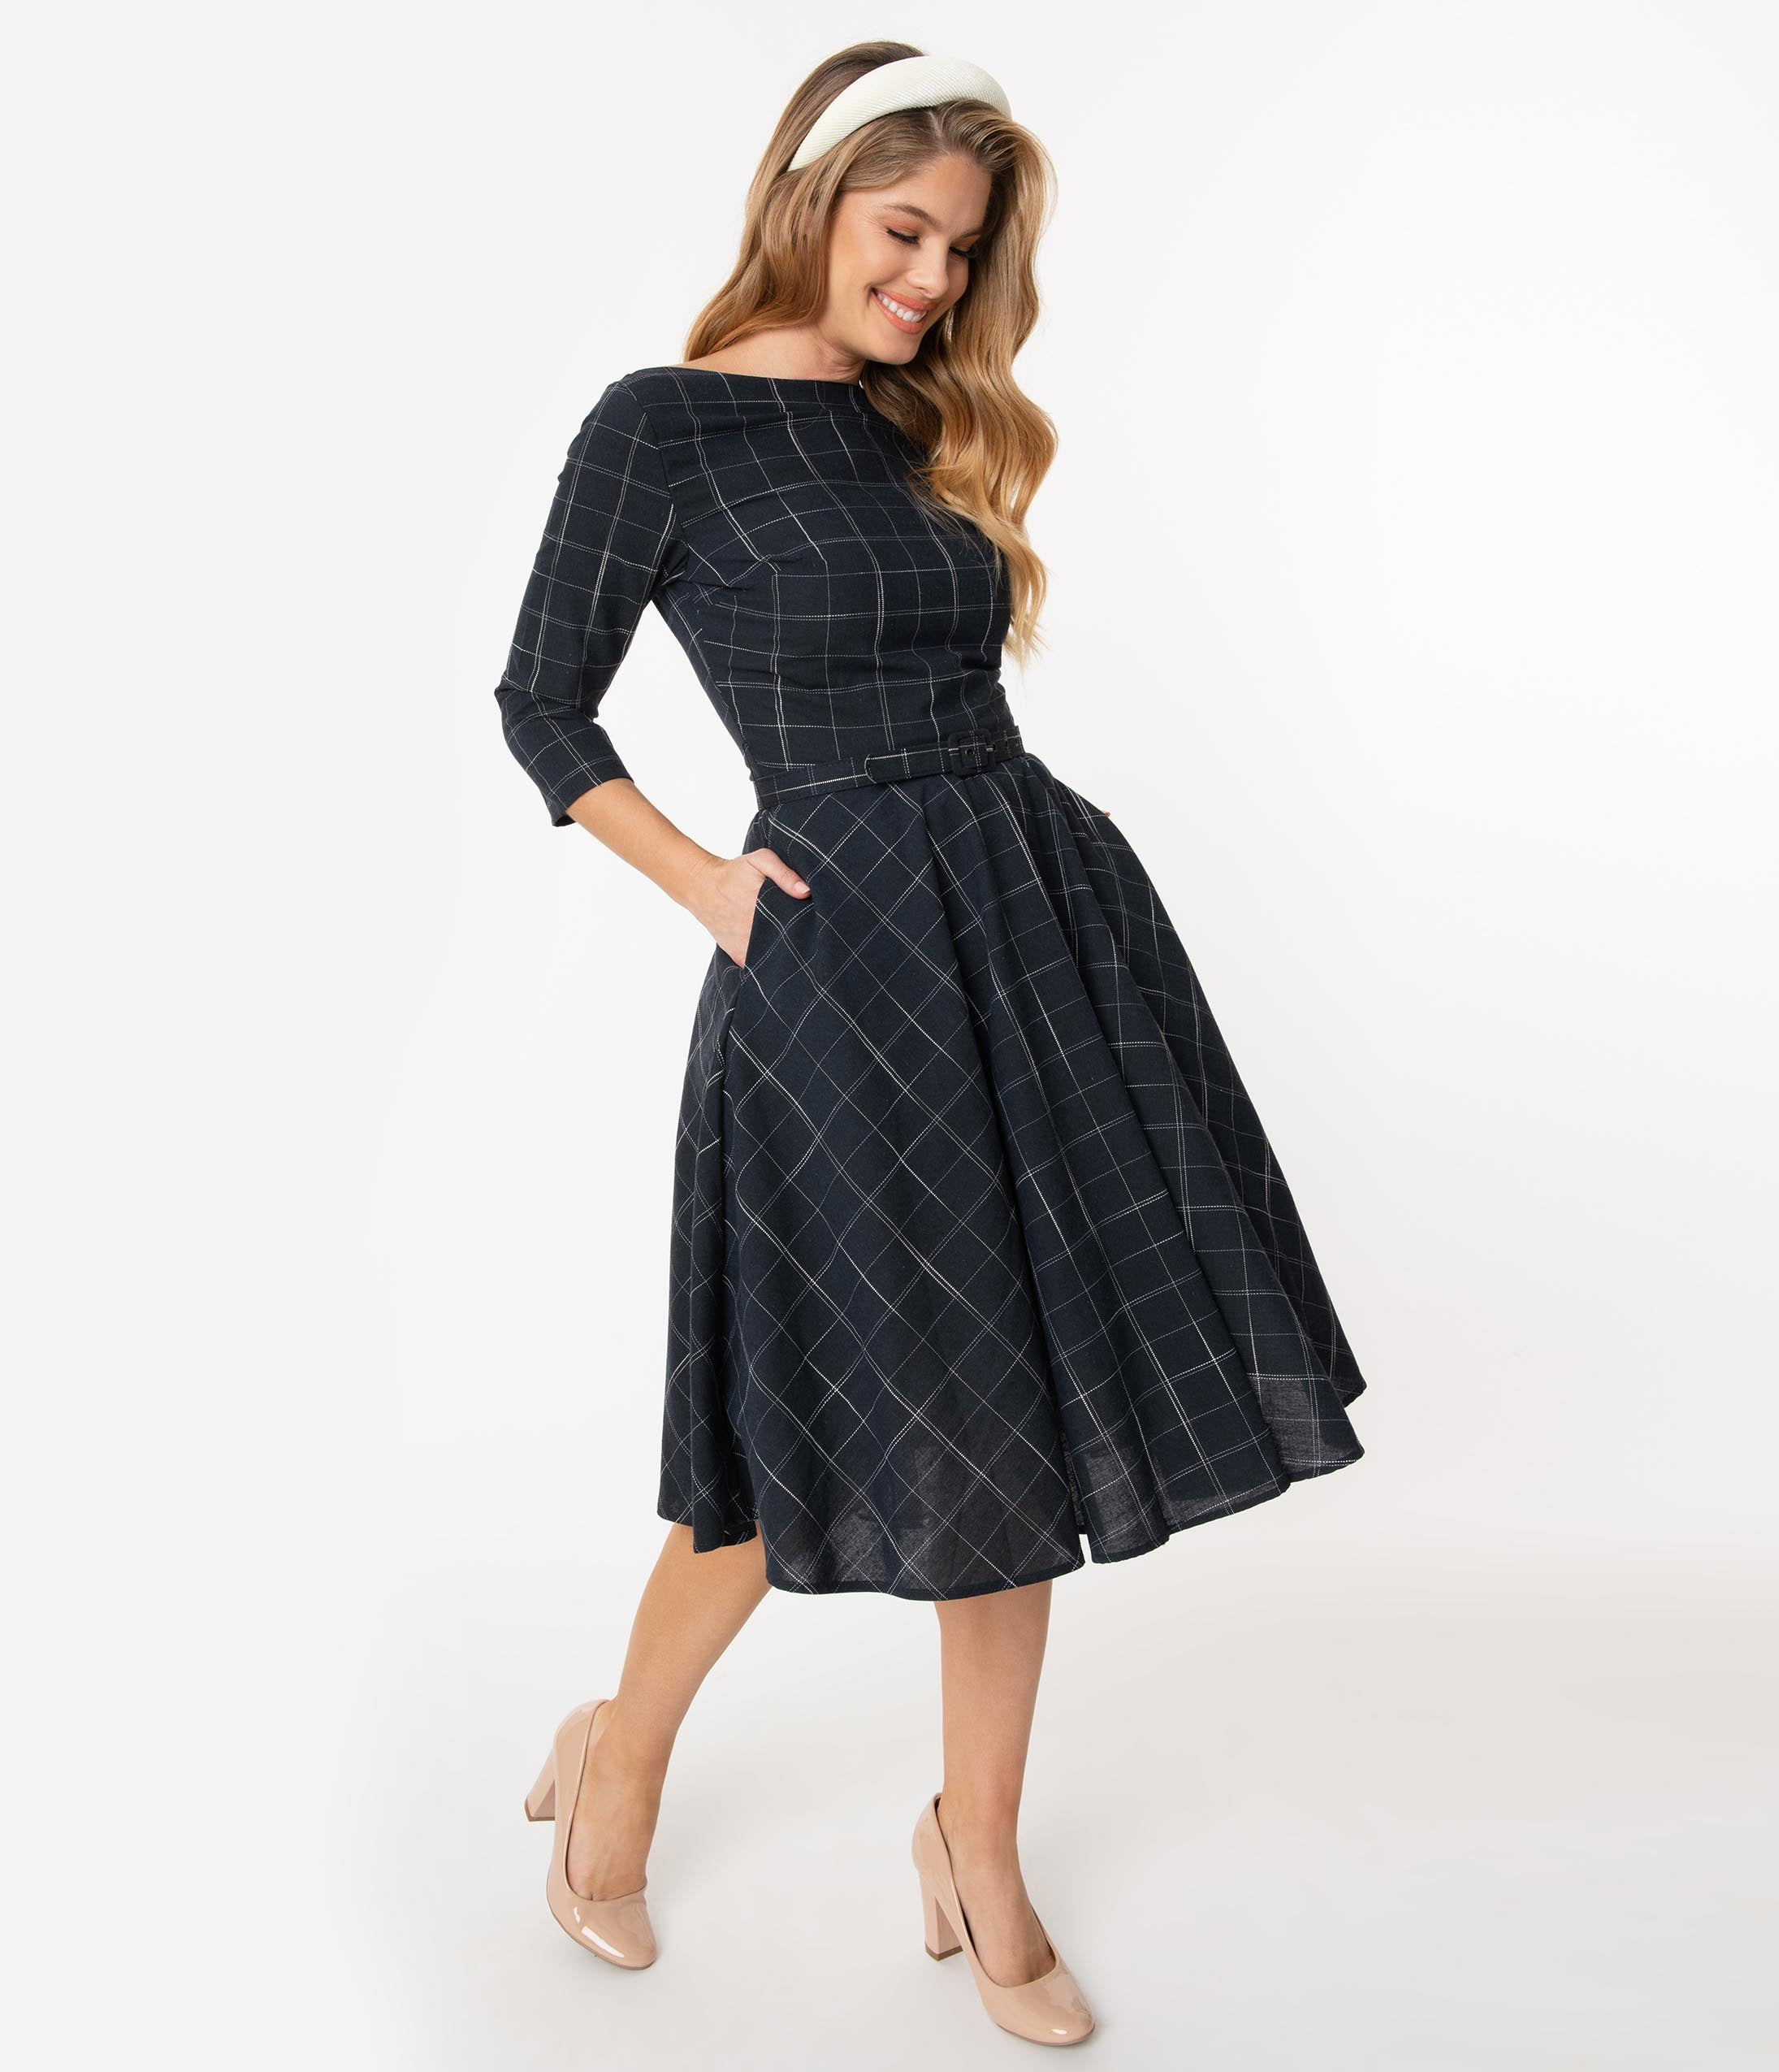 1960s Cocktail, Party, Prom, Evening Dresses Unique Vintage 1950S Navy Windowpane Devon Swing Dress $98.00 AT vintagedancer.com